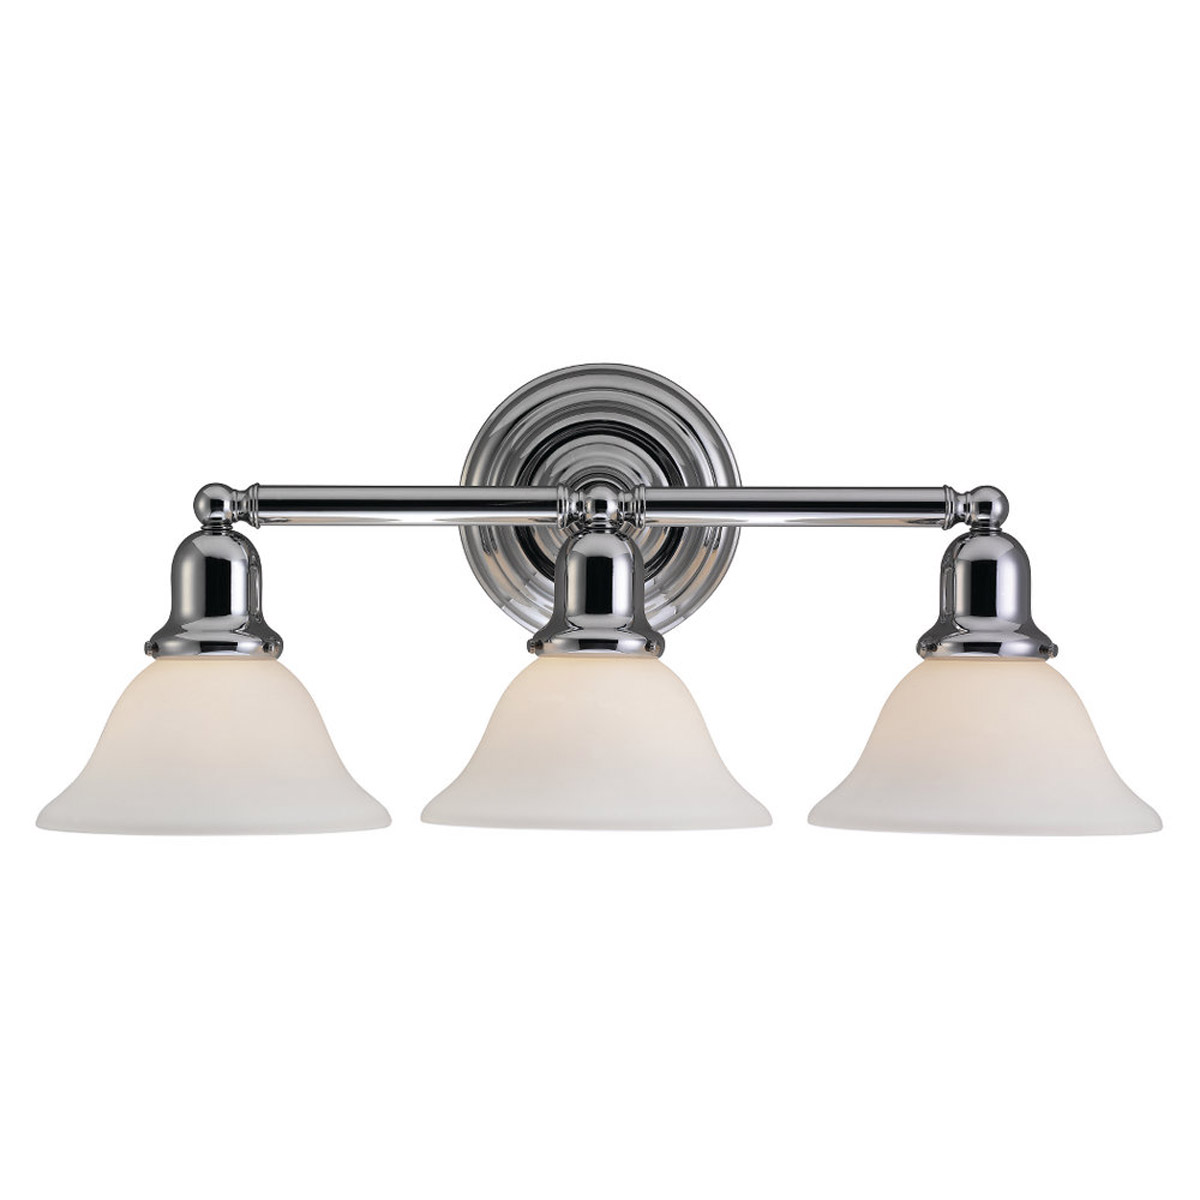 Sea Gull Lighting Sussex 3 Light Bath Vanity in Chrome 44062-05